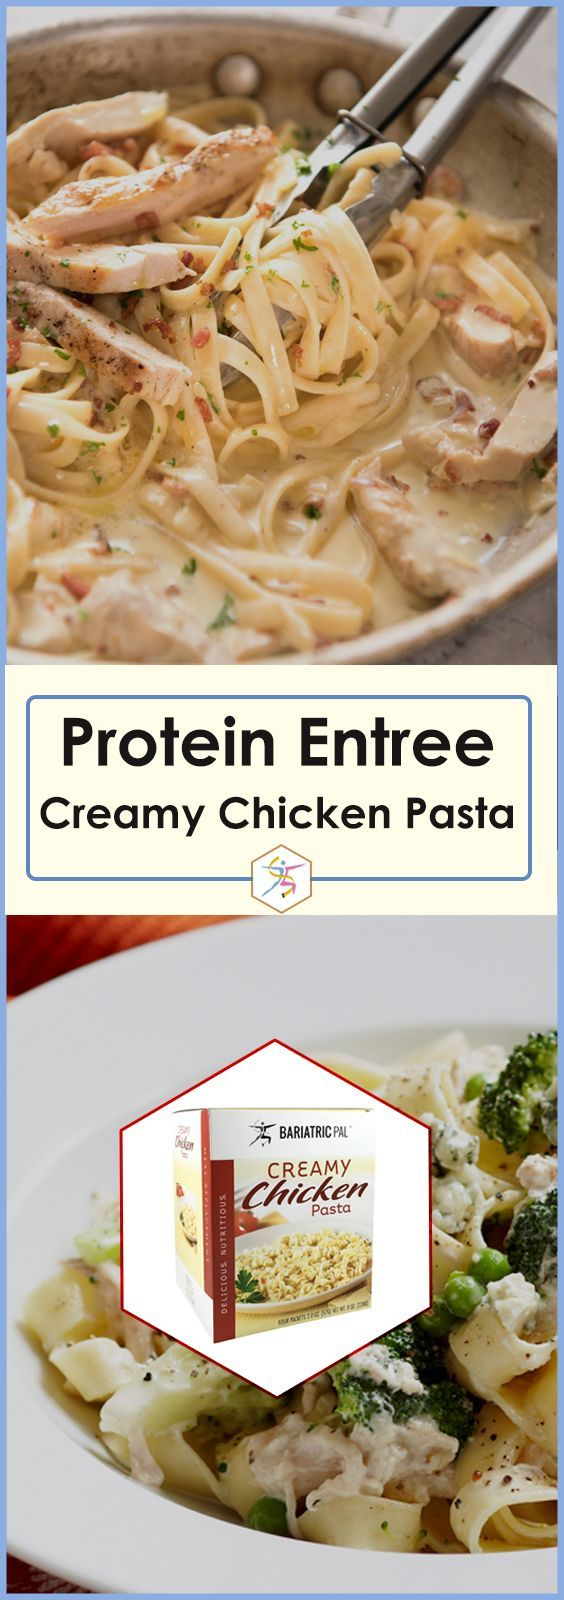 BariatricPal Protein Entree - Creamy Chicken PastaThis perfectly portioned entree lets you enjoy the traditional flavors you love without any of the guilt. It's in portable packaging and ready in minutes. It is an excellent dinner after a long day, and you can have it as a lunch at work to make your colleagues ask how you can be losing weight while eating so well!Highlights:15 grams protein210 calories15% of the daily value for calcium and vitamin A10% of the daily value for ir